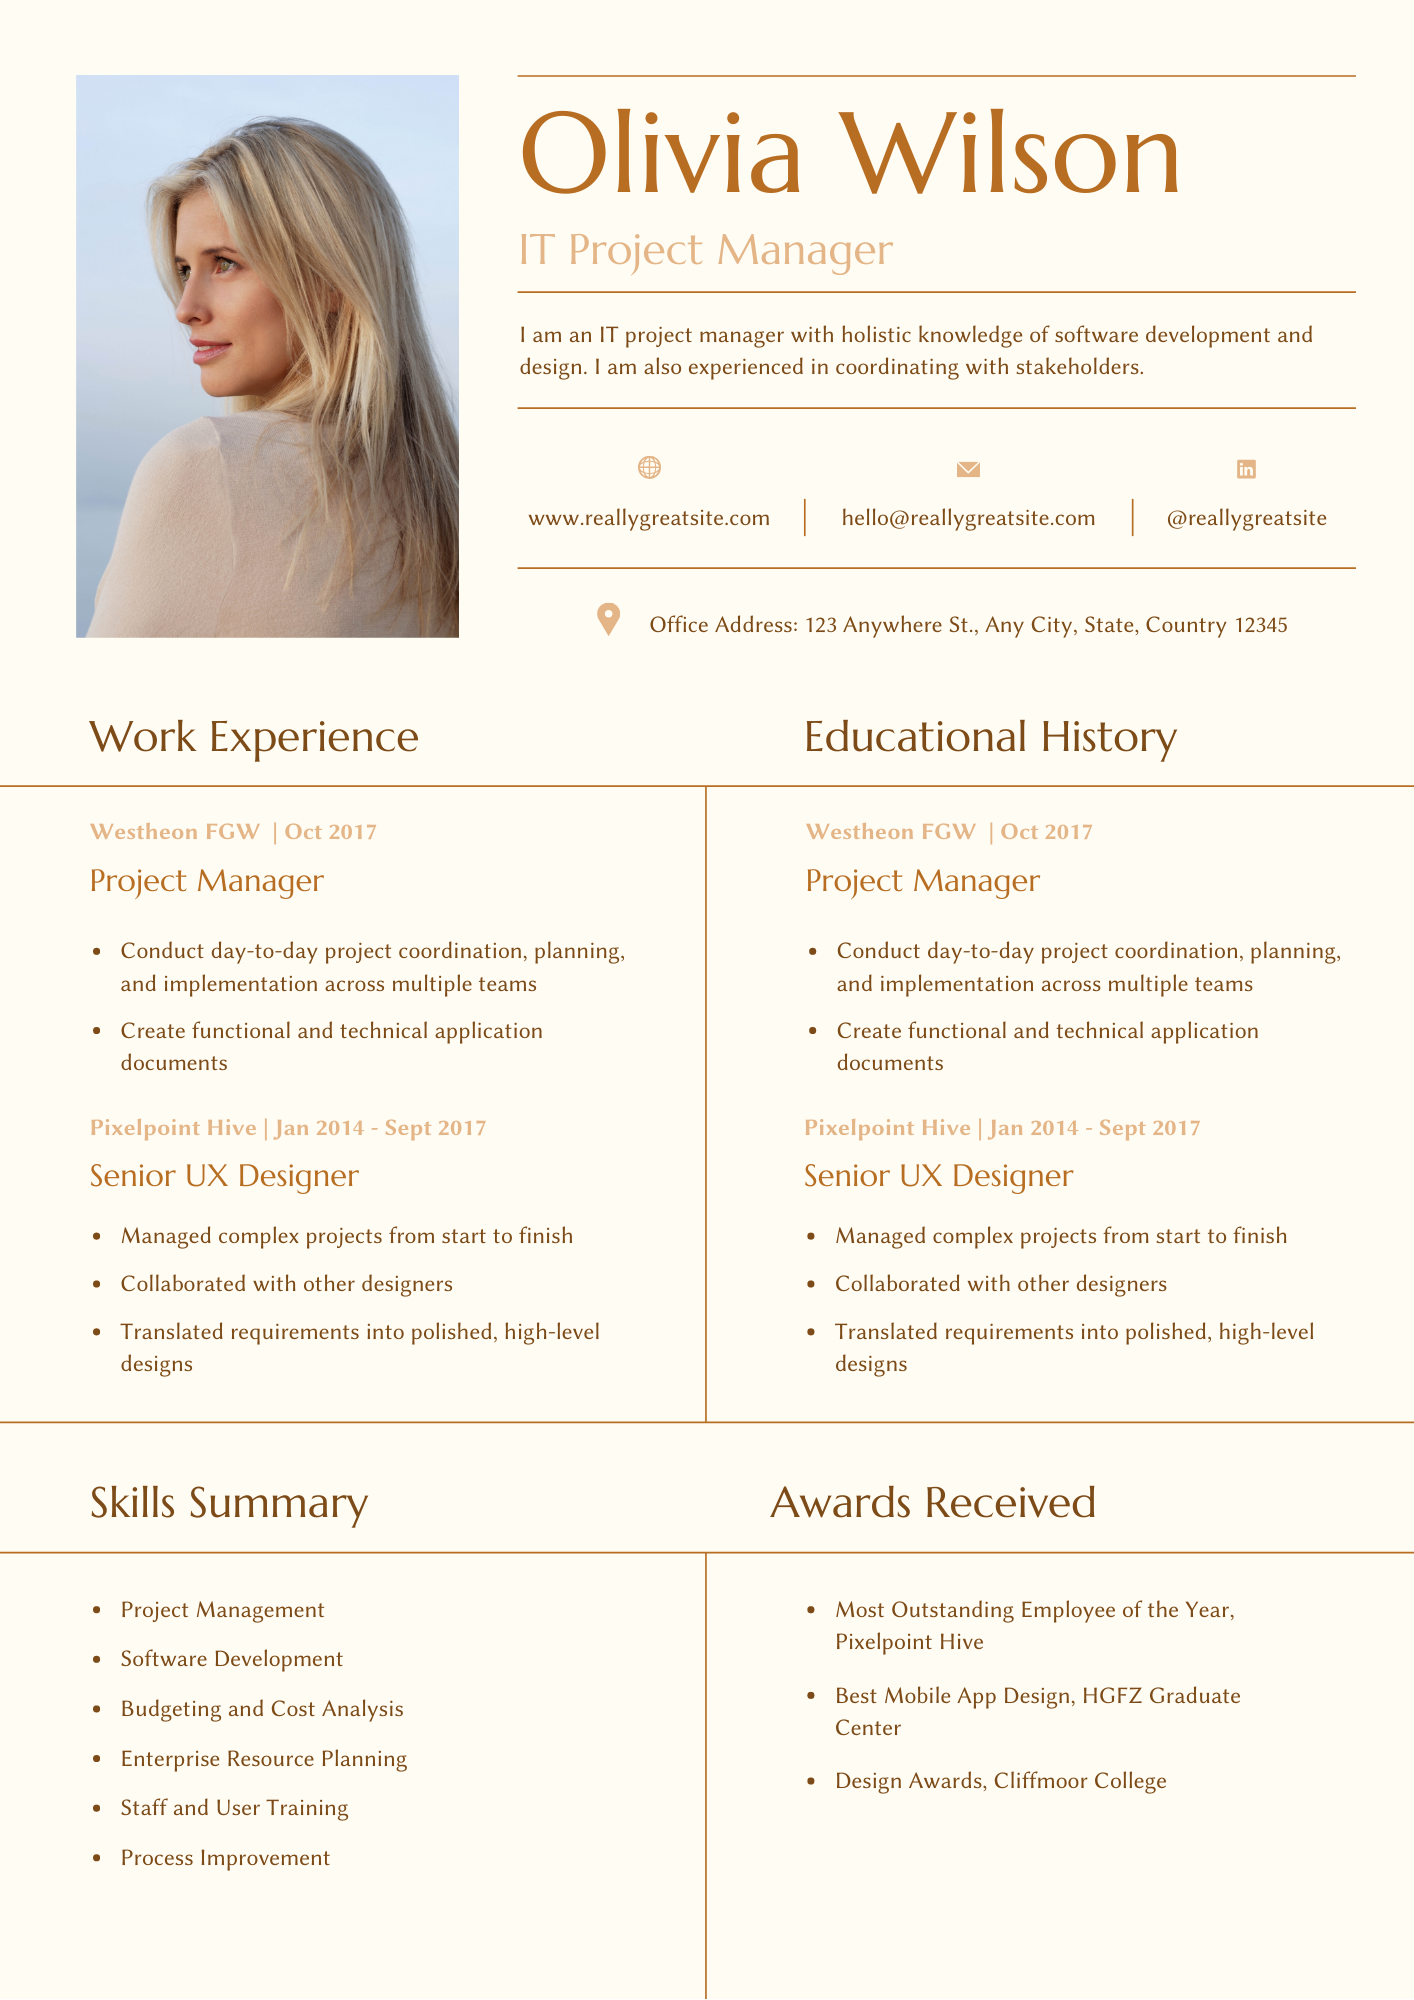 Brown and Cream Modern Resume